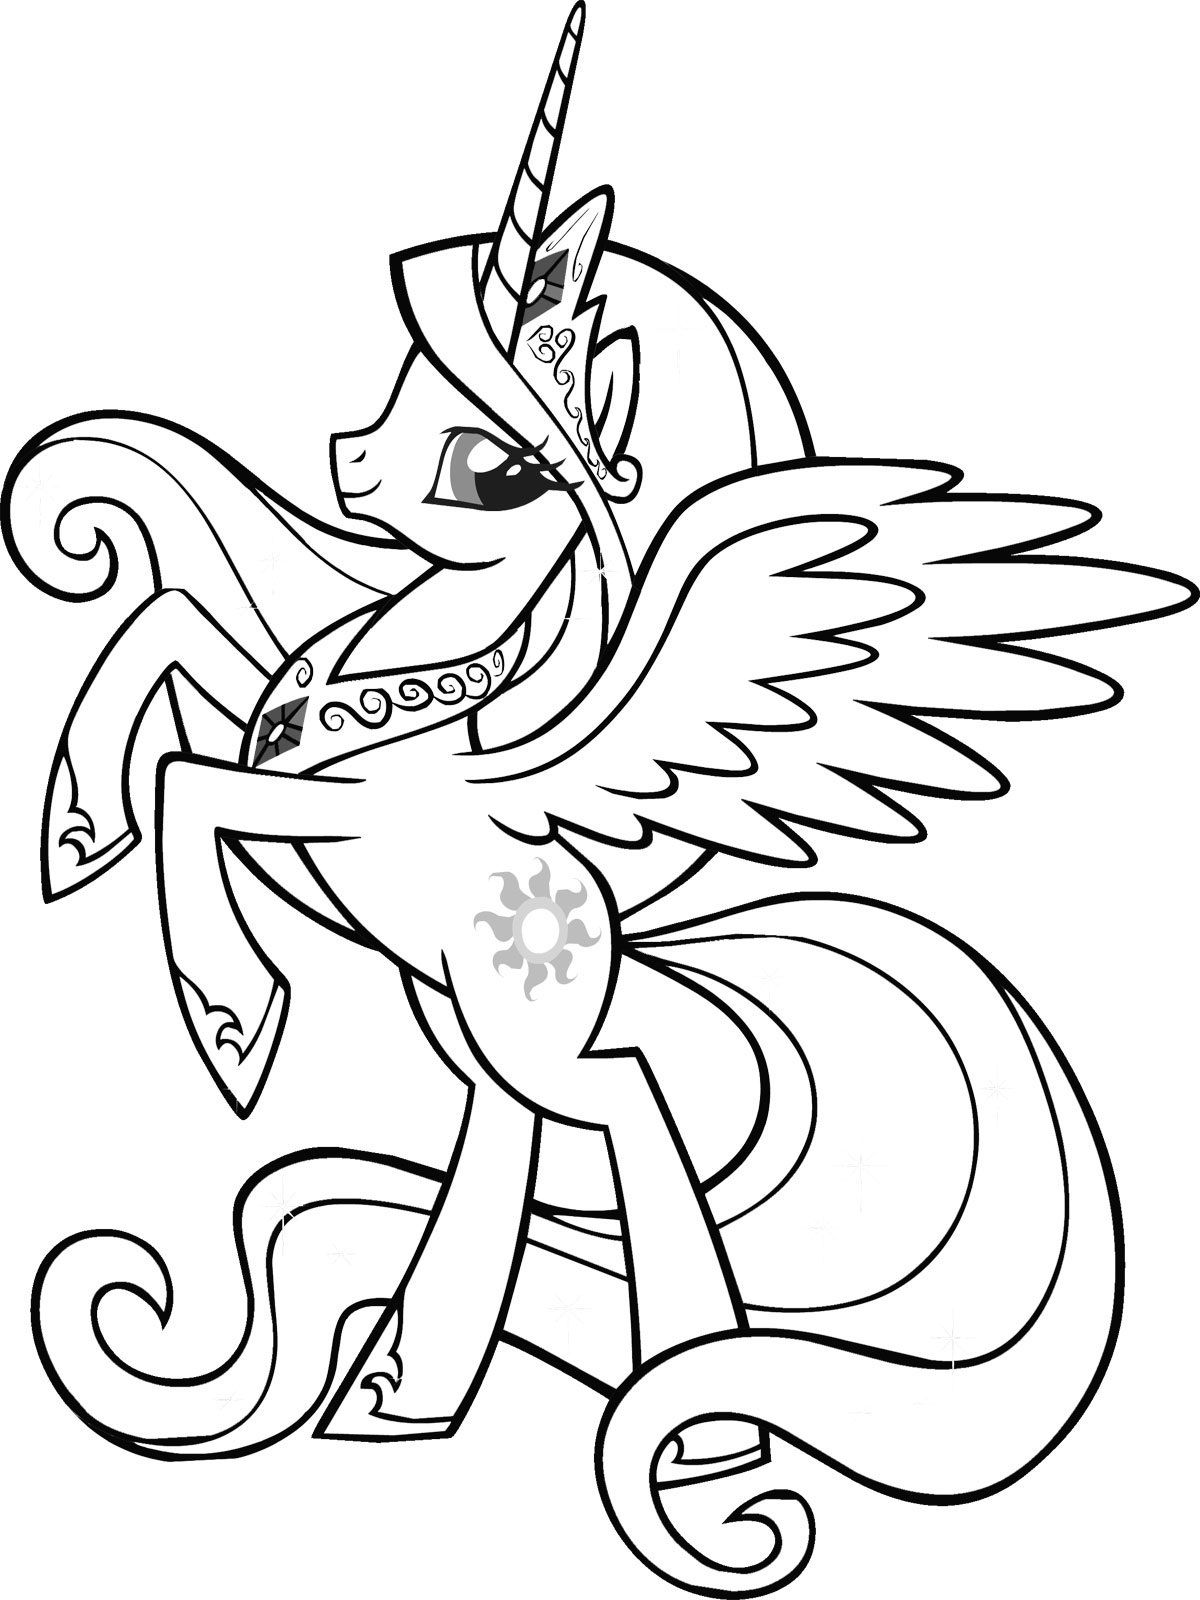 My little pony unicorn coloring pages - Beautiful Queen My Little Pony Coloring Pages